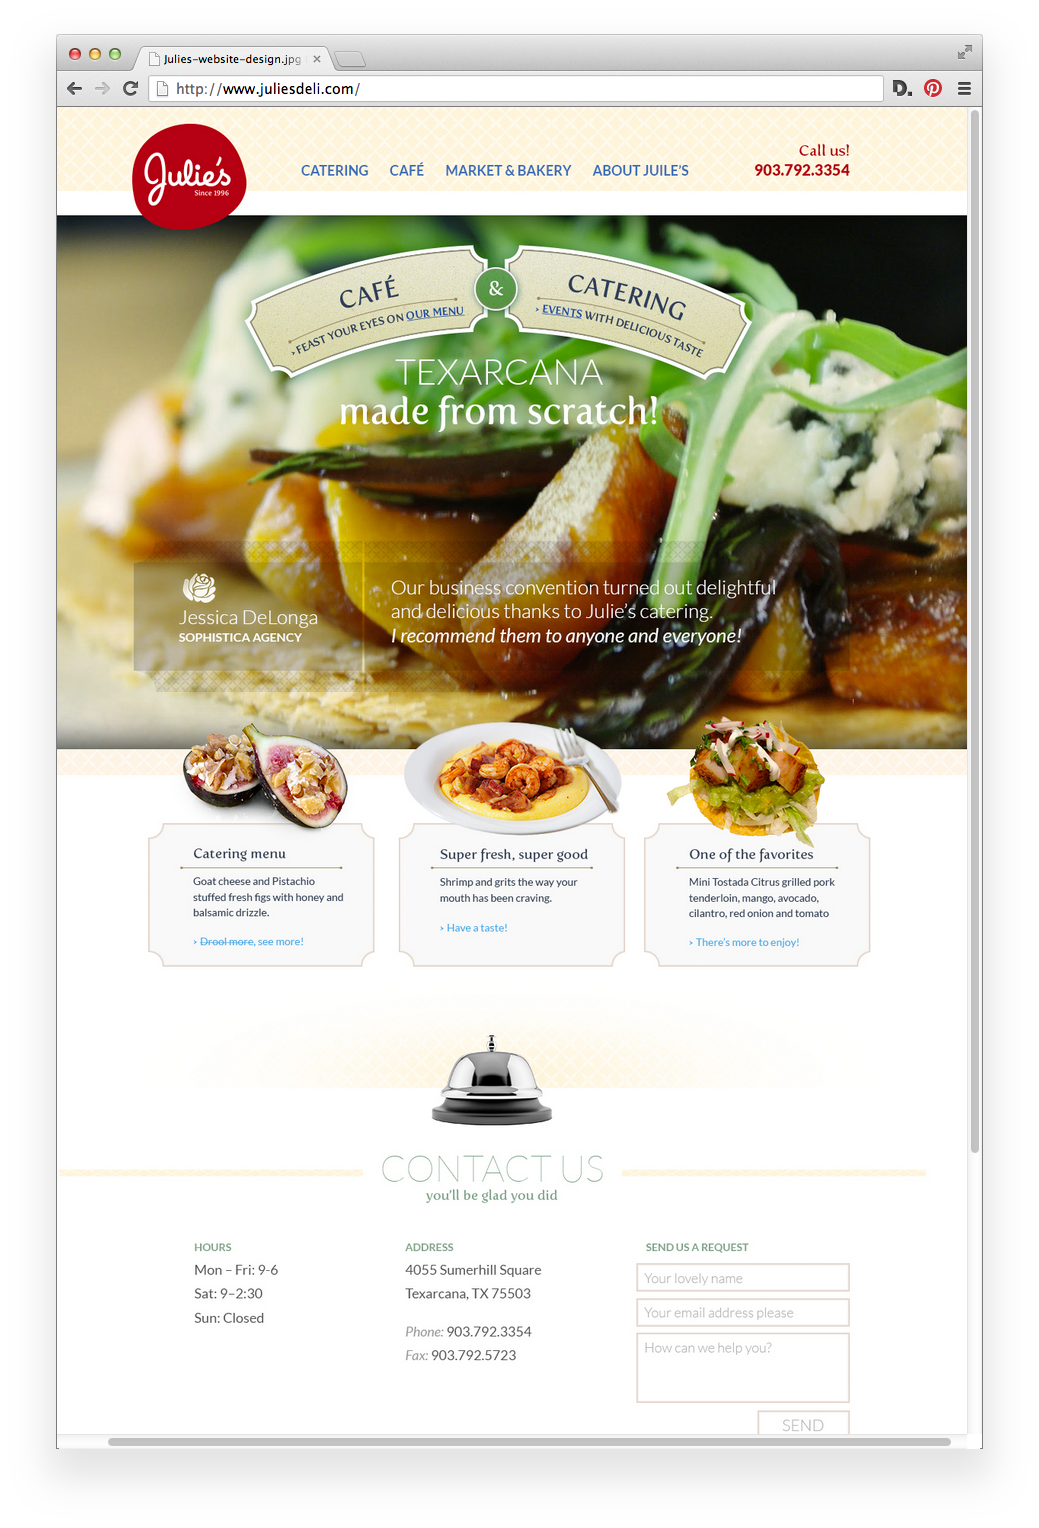 website design for Juile's Deli in Texarcana.